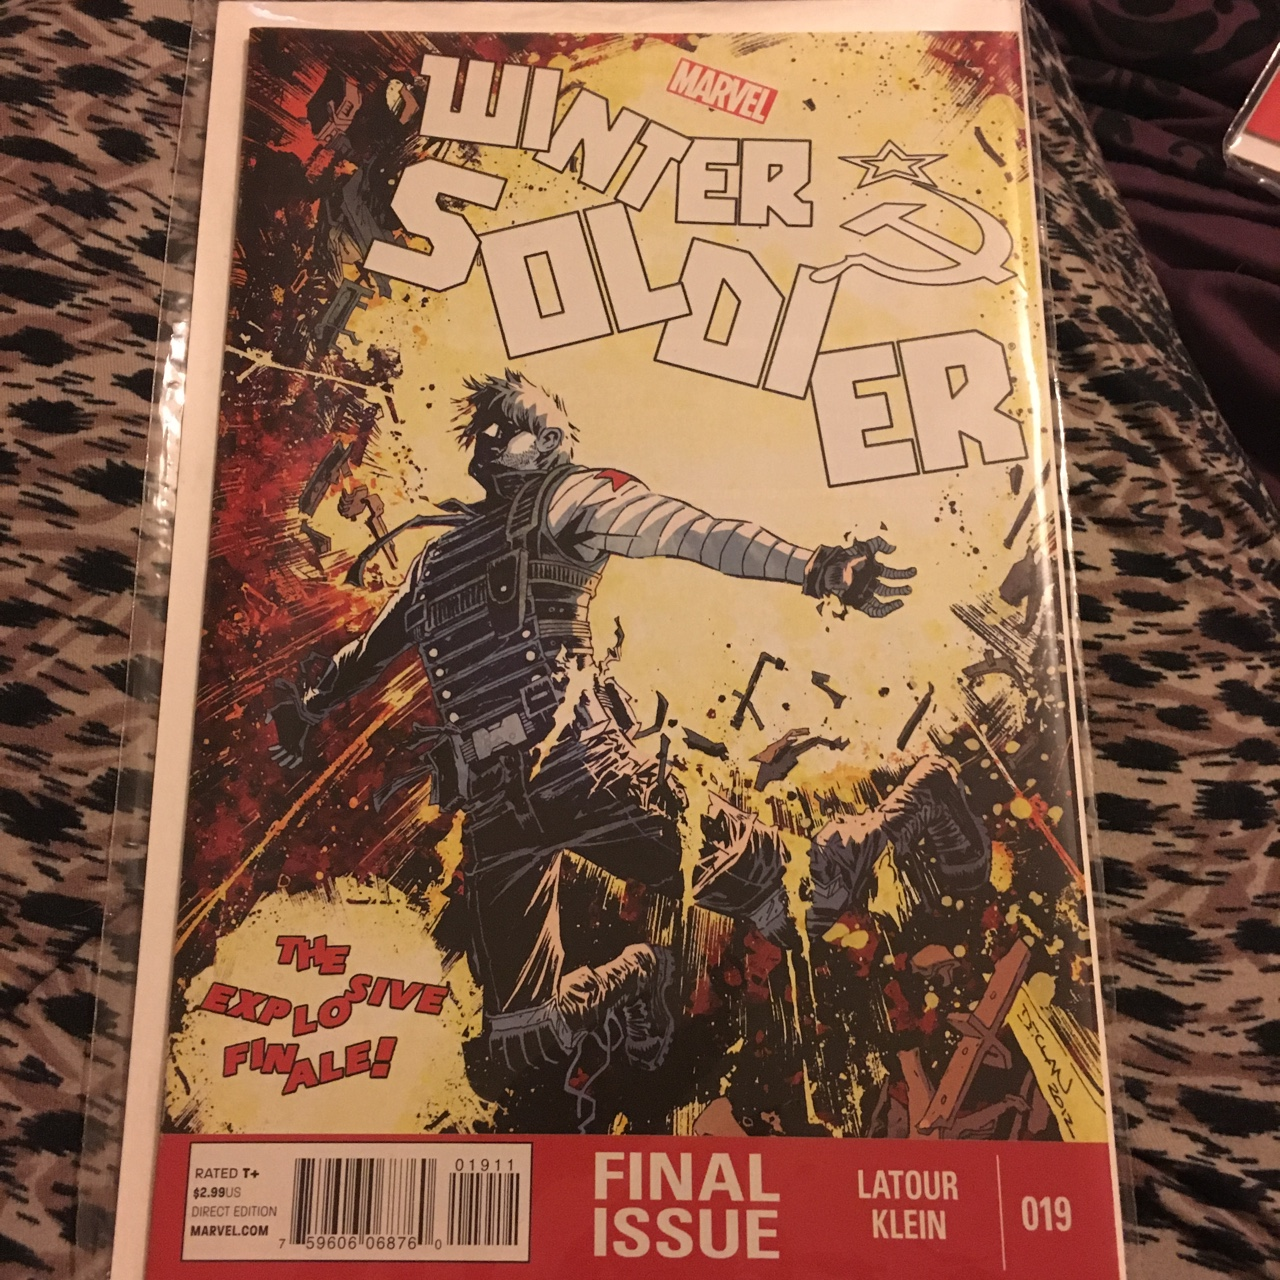 The winter soldier comic book, final issue 19, never    - Depop